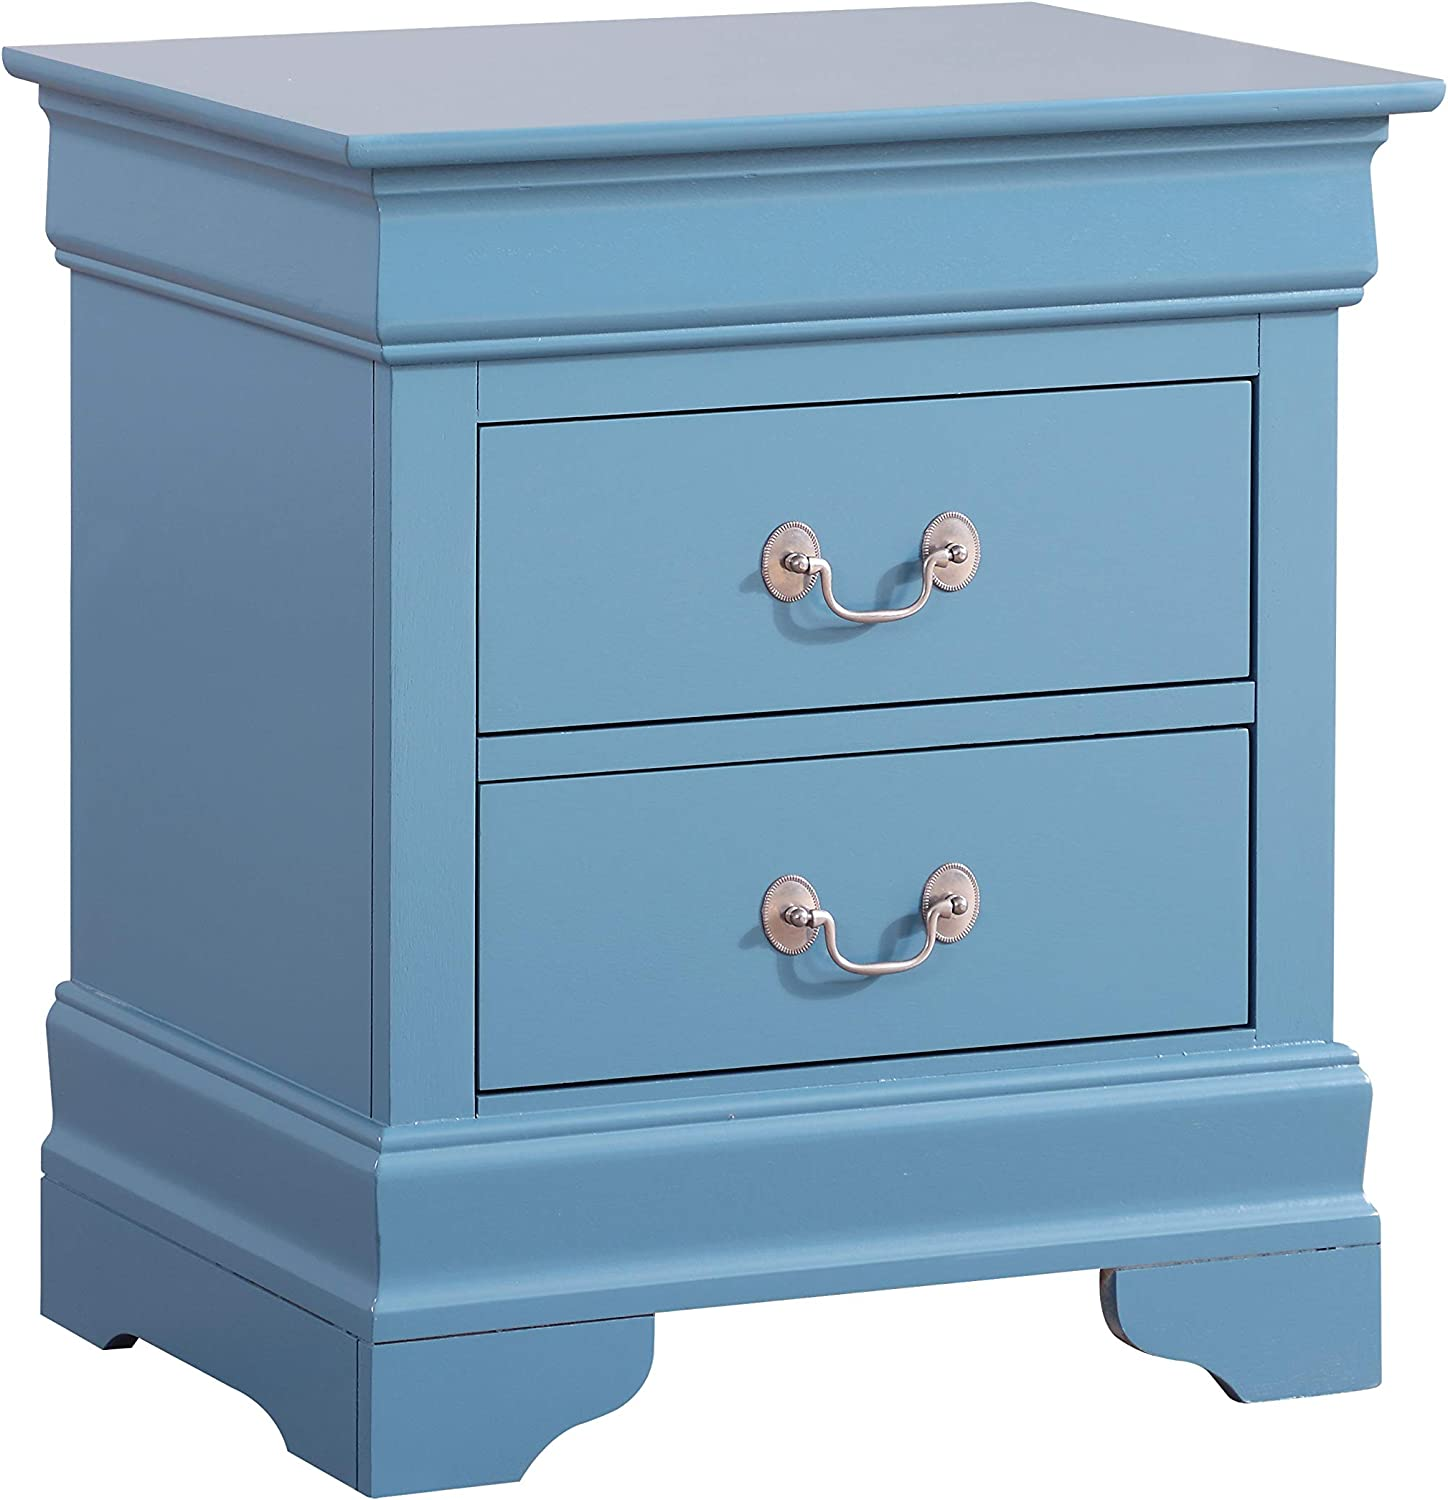 Glory Furniture Louis Phillipe , Teal Nightstand, DIMENSIONS – 24 inches high x 22 inches wide x 16 inches deep